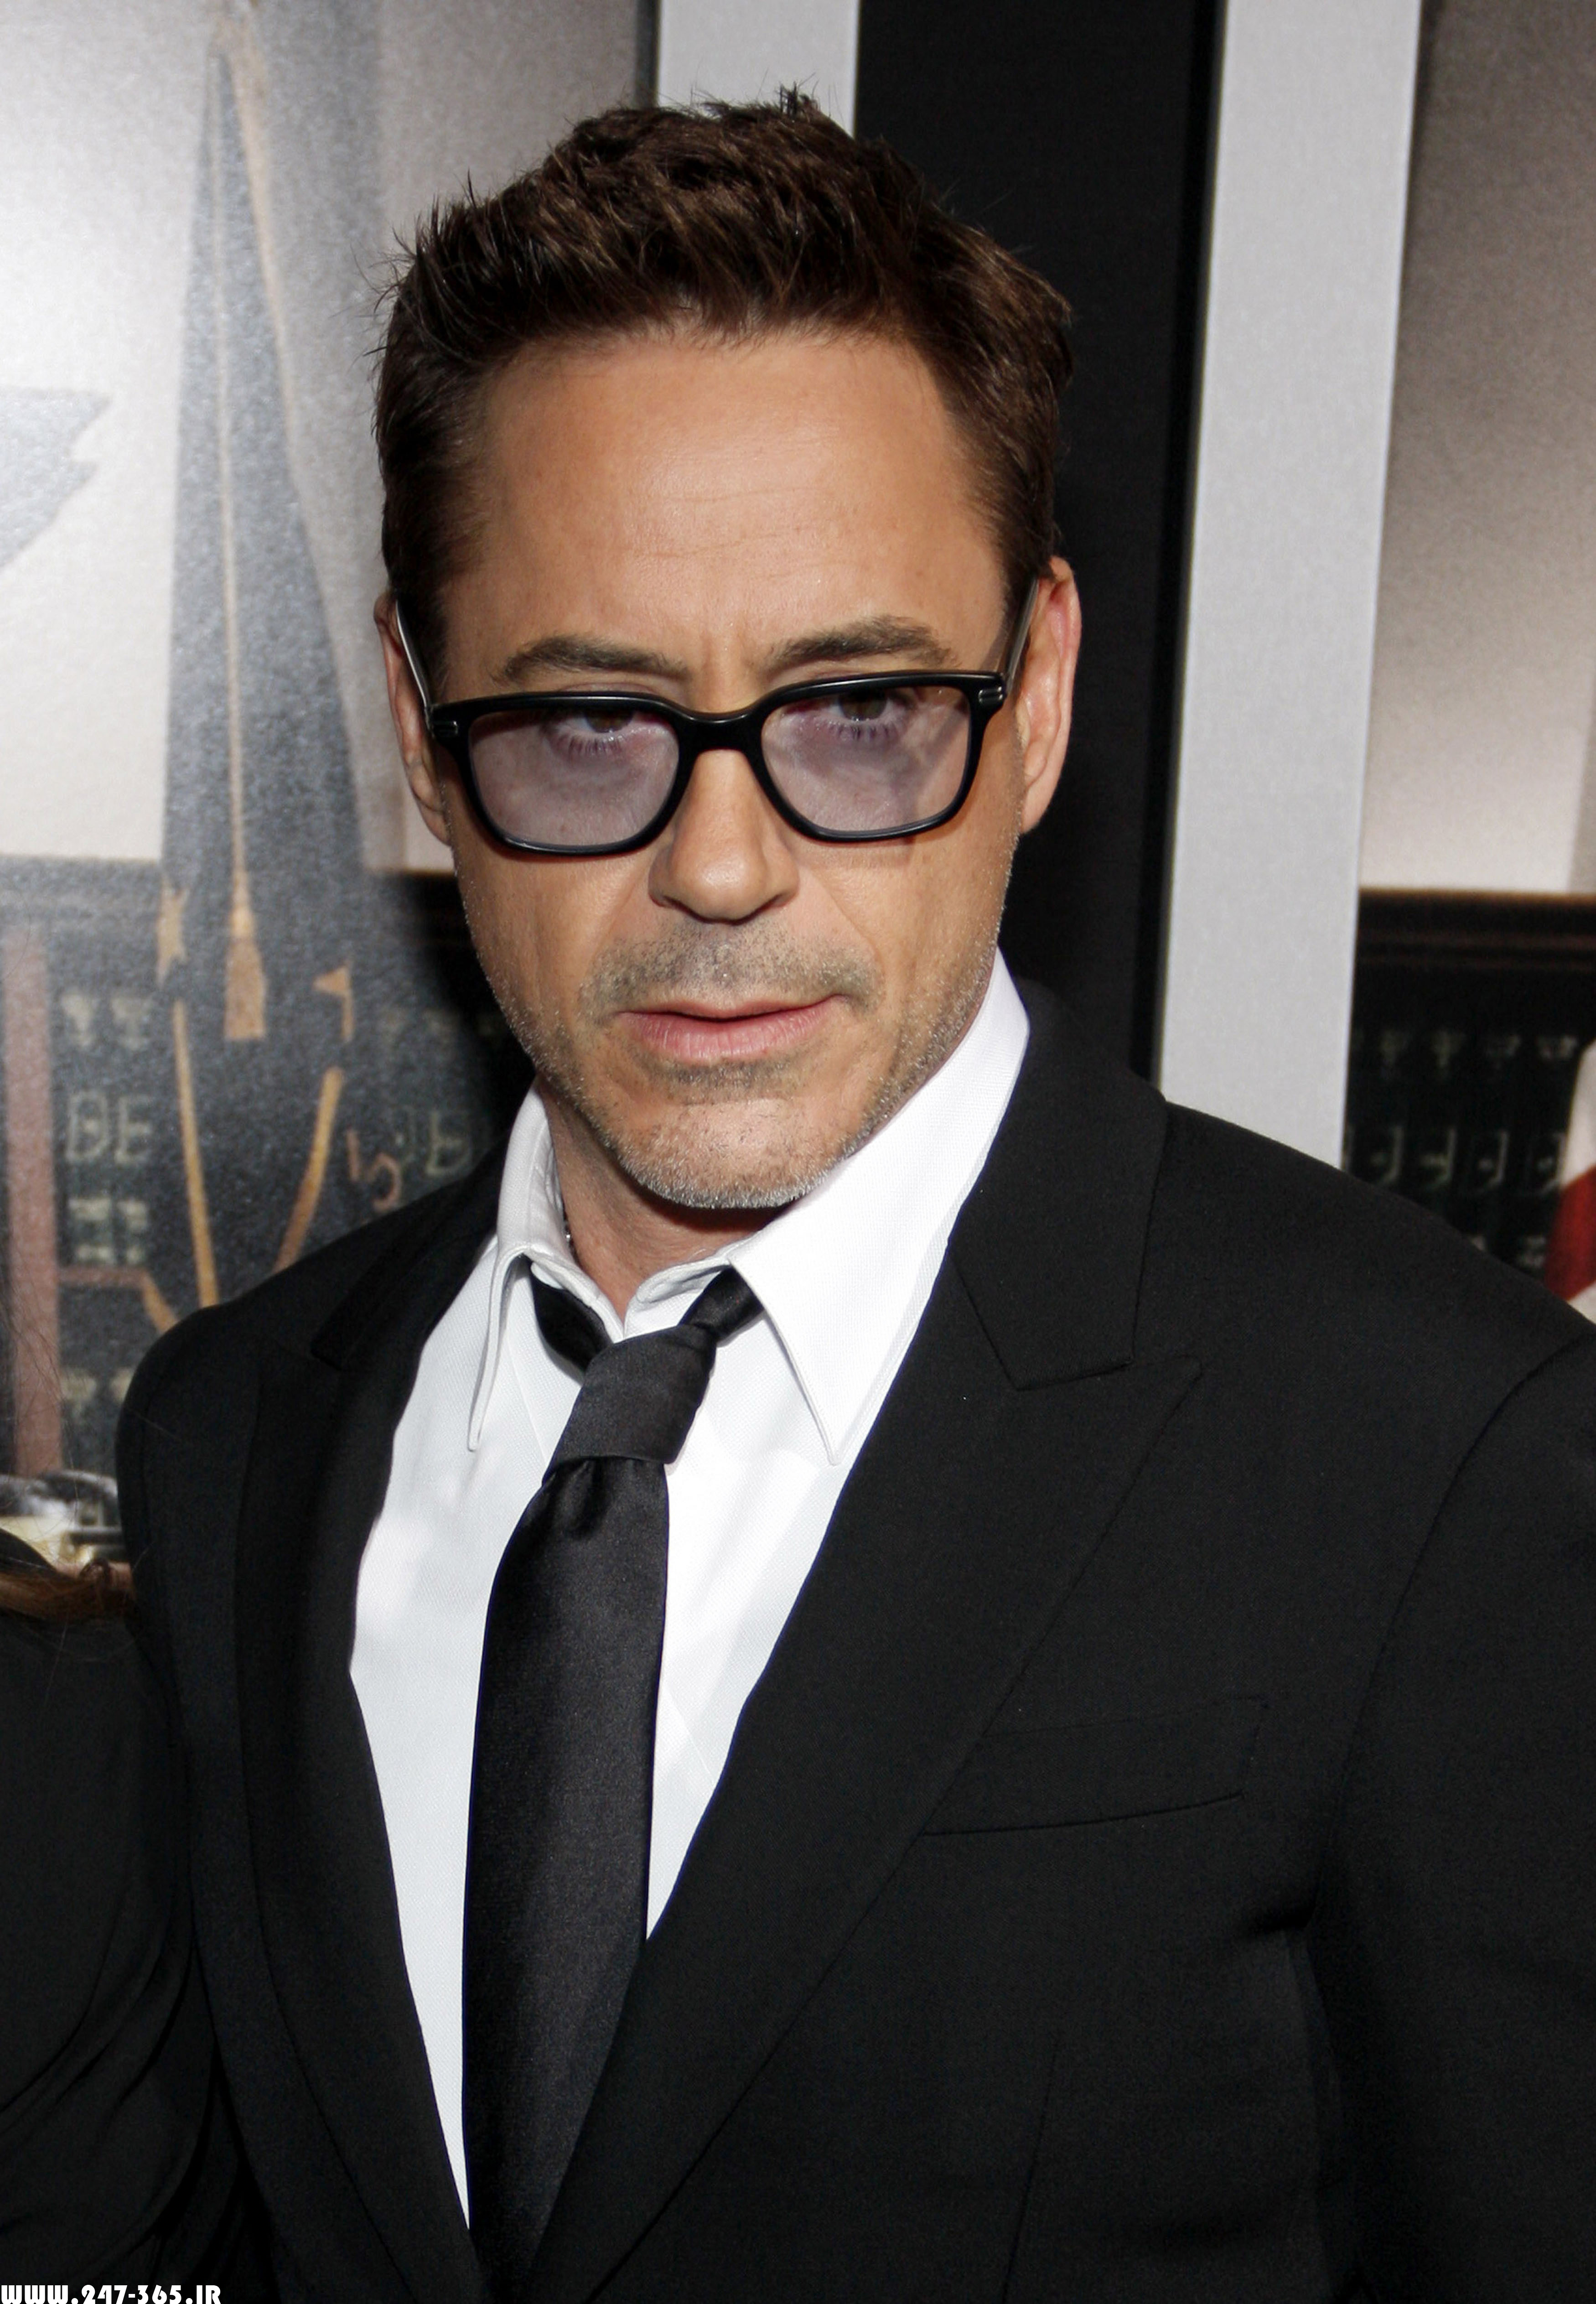 http://dl.247-365.ir/pic/celebrity/robert_downey_jr_2/Robert_Downey_Jr_2_16.jpg